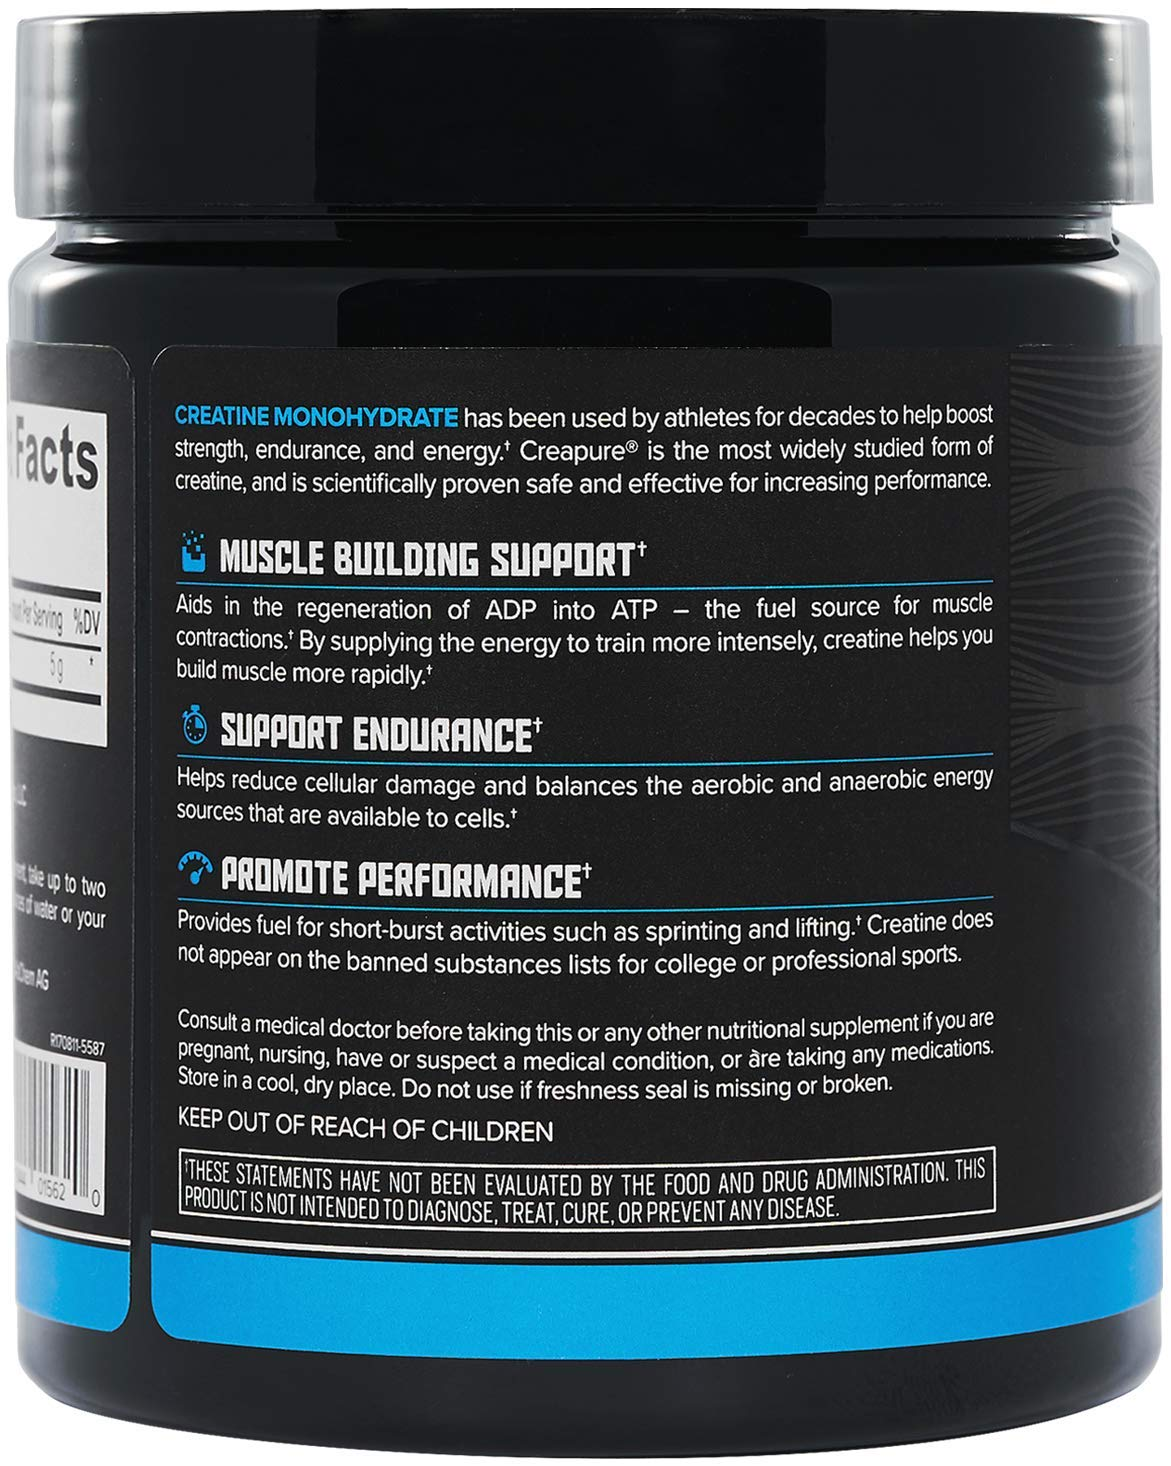 Onnit Micronized Creatine Monohydrate (Creapure) - 5g Per Serving - NSF Certified Creatine Powder - 30 Servings by ONNIT